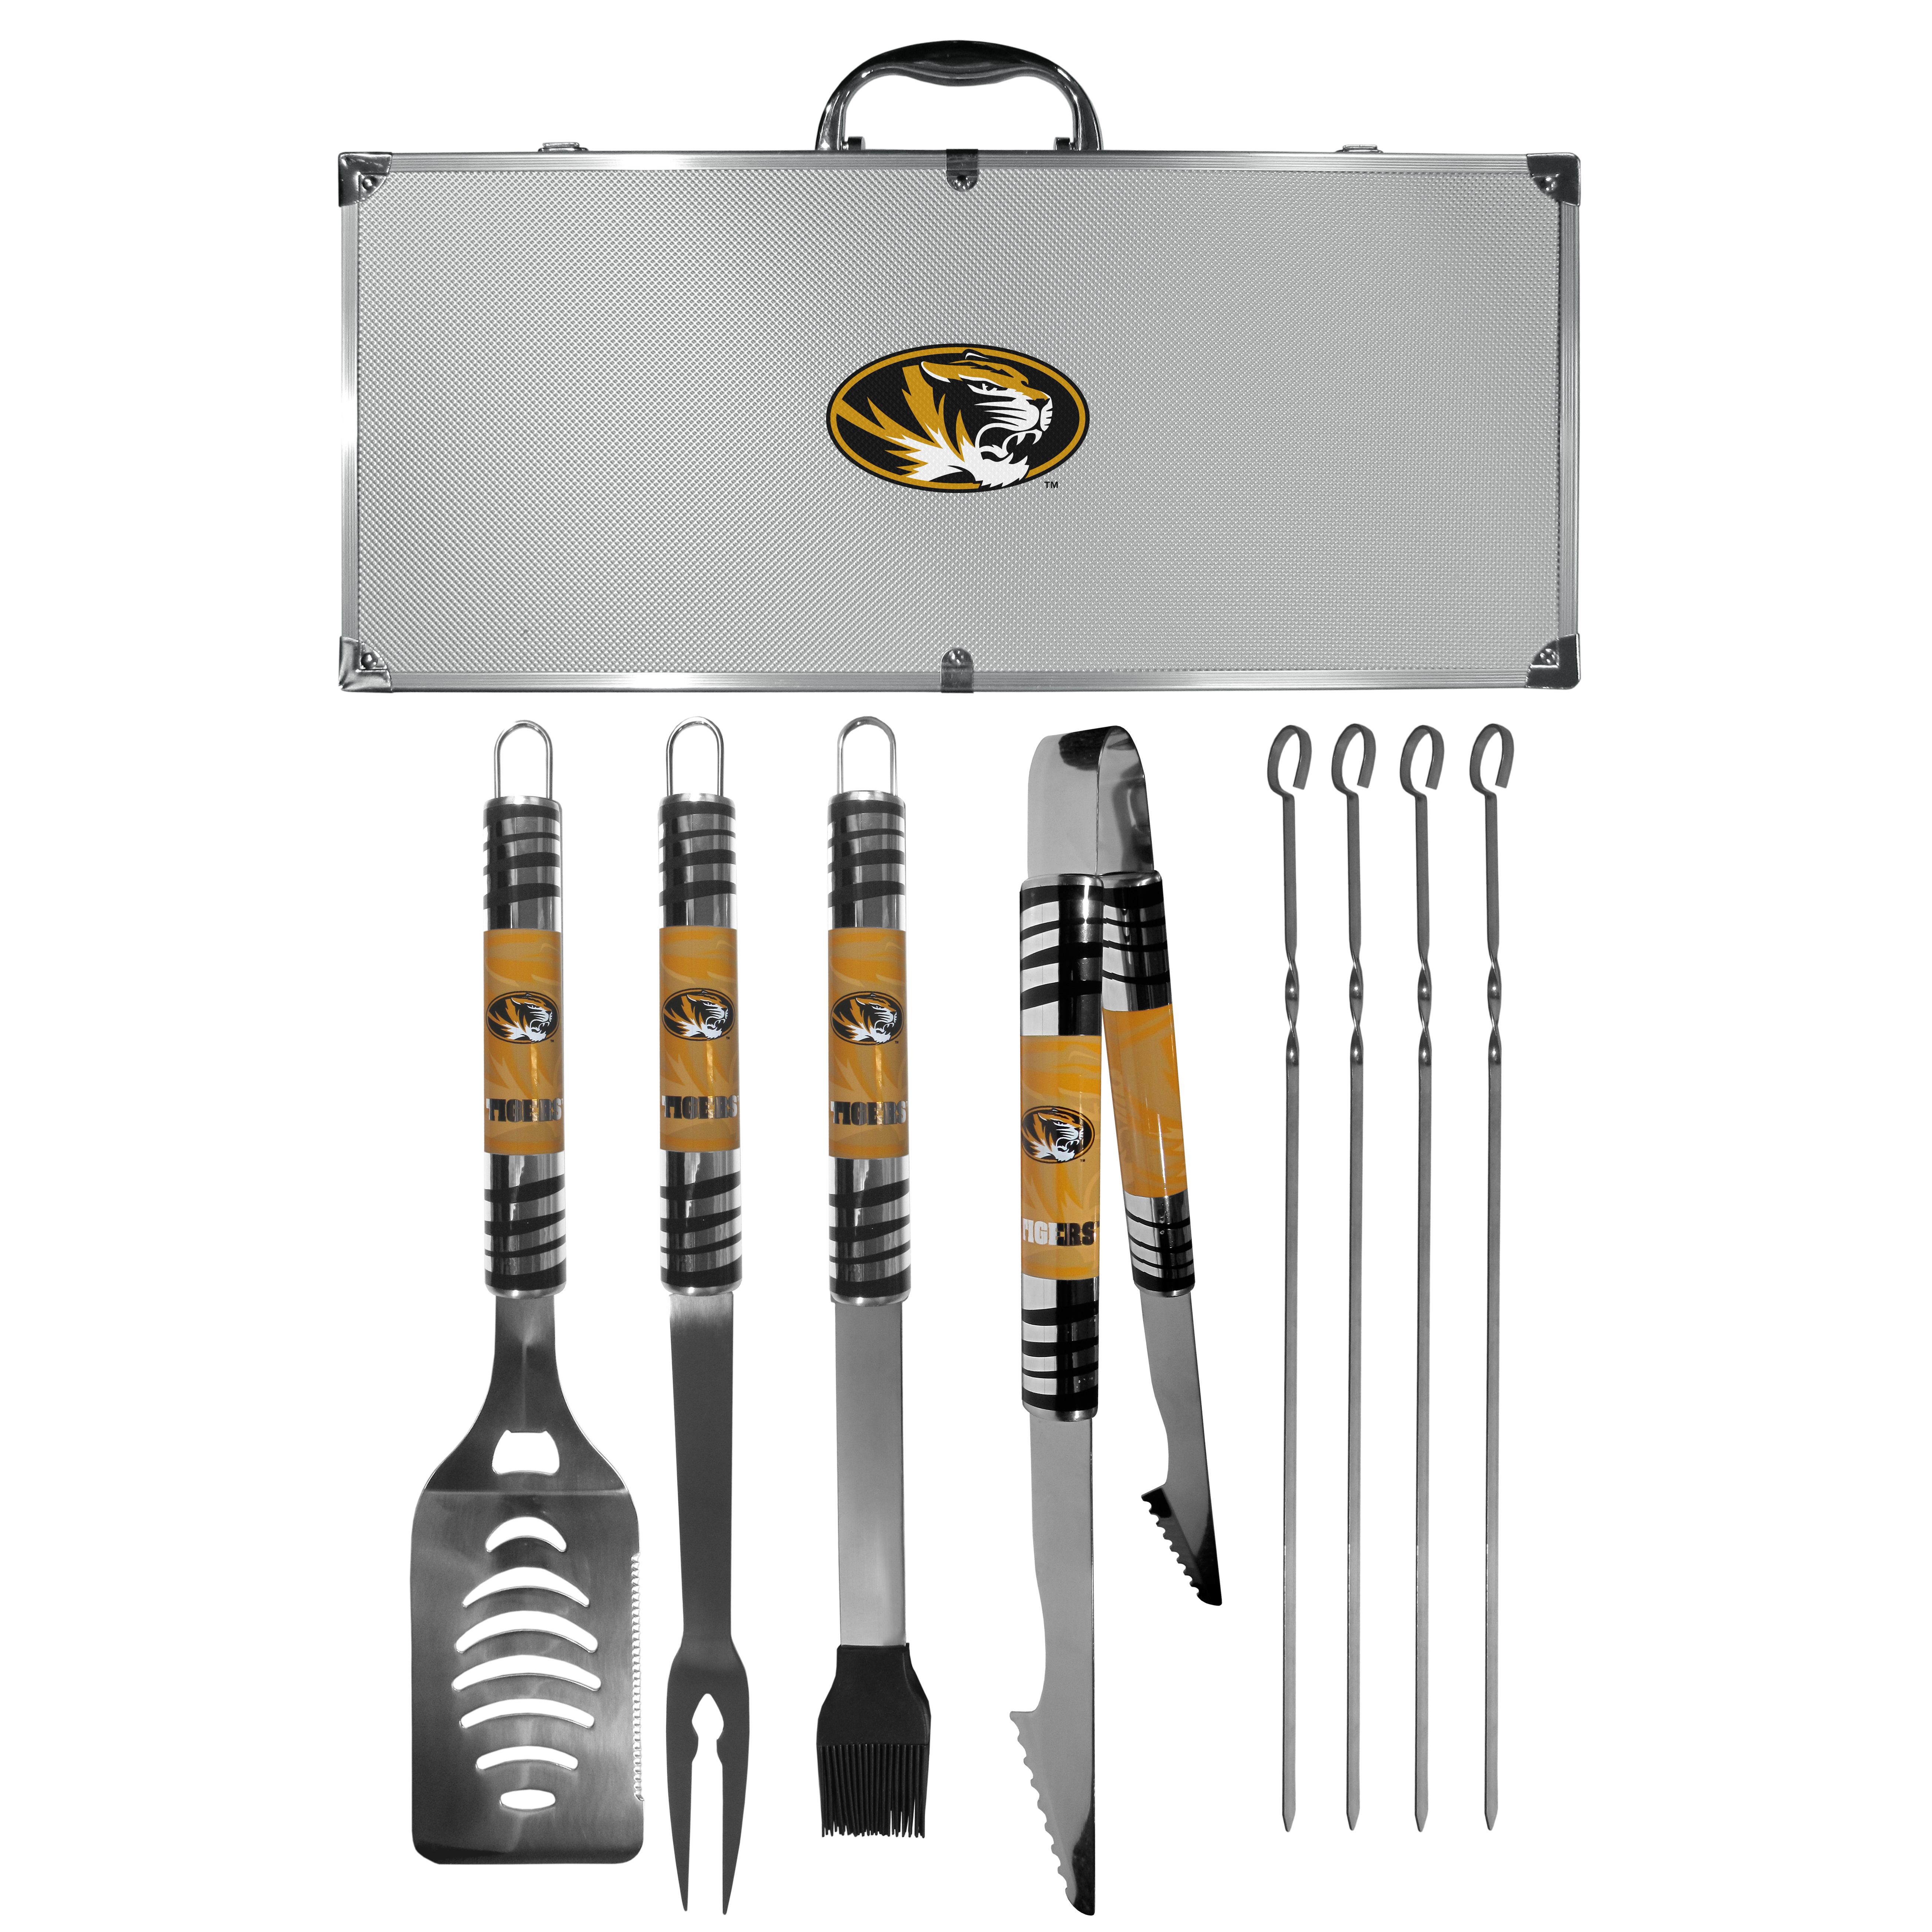 Missouri Tigers 8 pc Tailgater BBQ Set - This is the ultimate Missouri Tigers tailgate accessory! The high quality, 420 grade stainless steel tools are durable and well-made enough to make even the pickiest grill master smile. This complete grill accessory kit includes; 4 skewers, spatula with bottle opener and serrated knife edge, basting brush, tongs and a fork. The 18 inch metal carrying case is perfect for great outdoor use making grilling an ease while camping, tailgating or while having a game day party on your patio. The tools are 17 inches long and feature vivid team graphics. The metal case features a large team emblem with exceptional detail. This high-end men's gift is sure to be a hit as a present on Father's Day or Christmas.